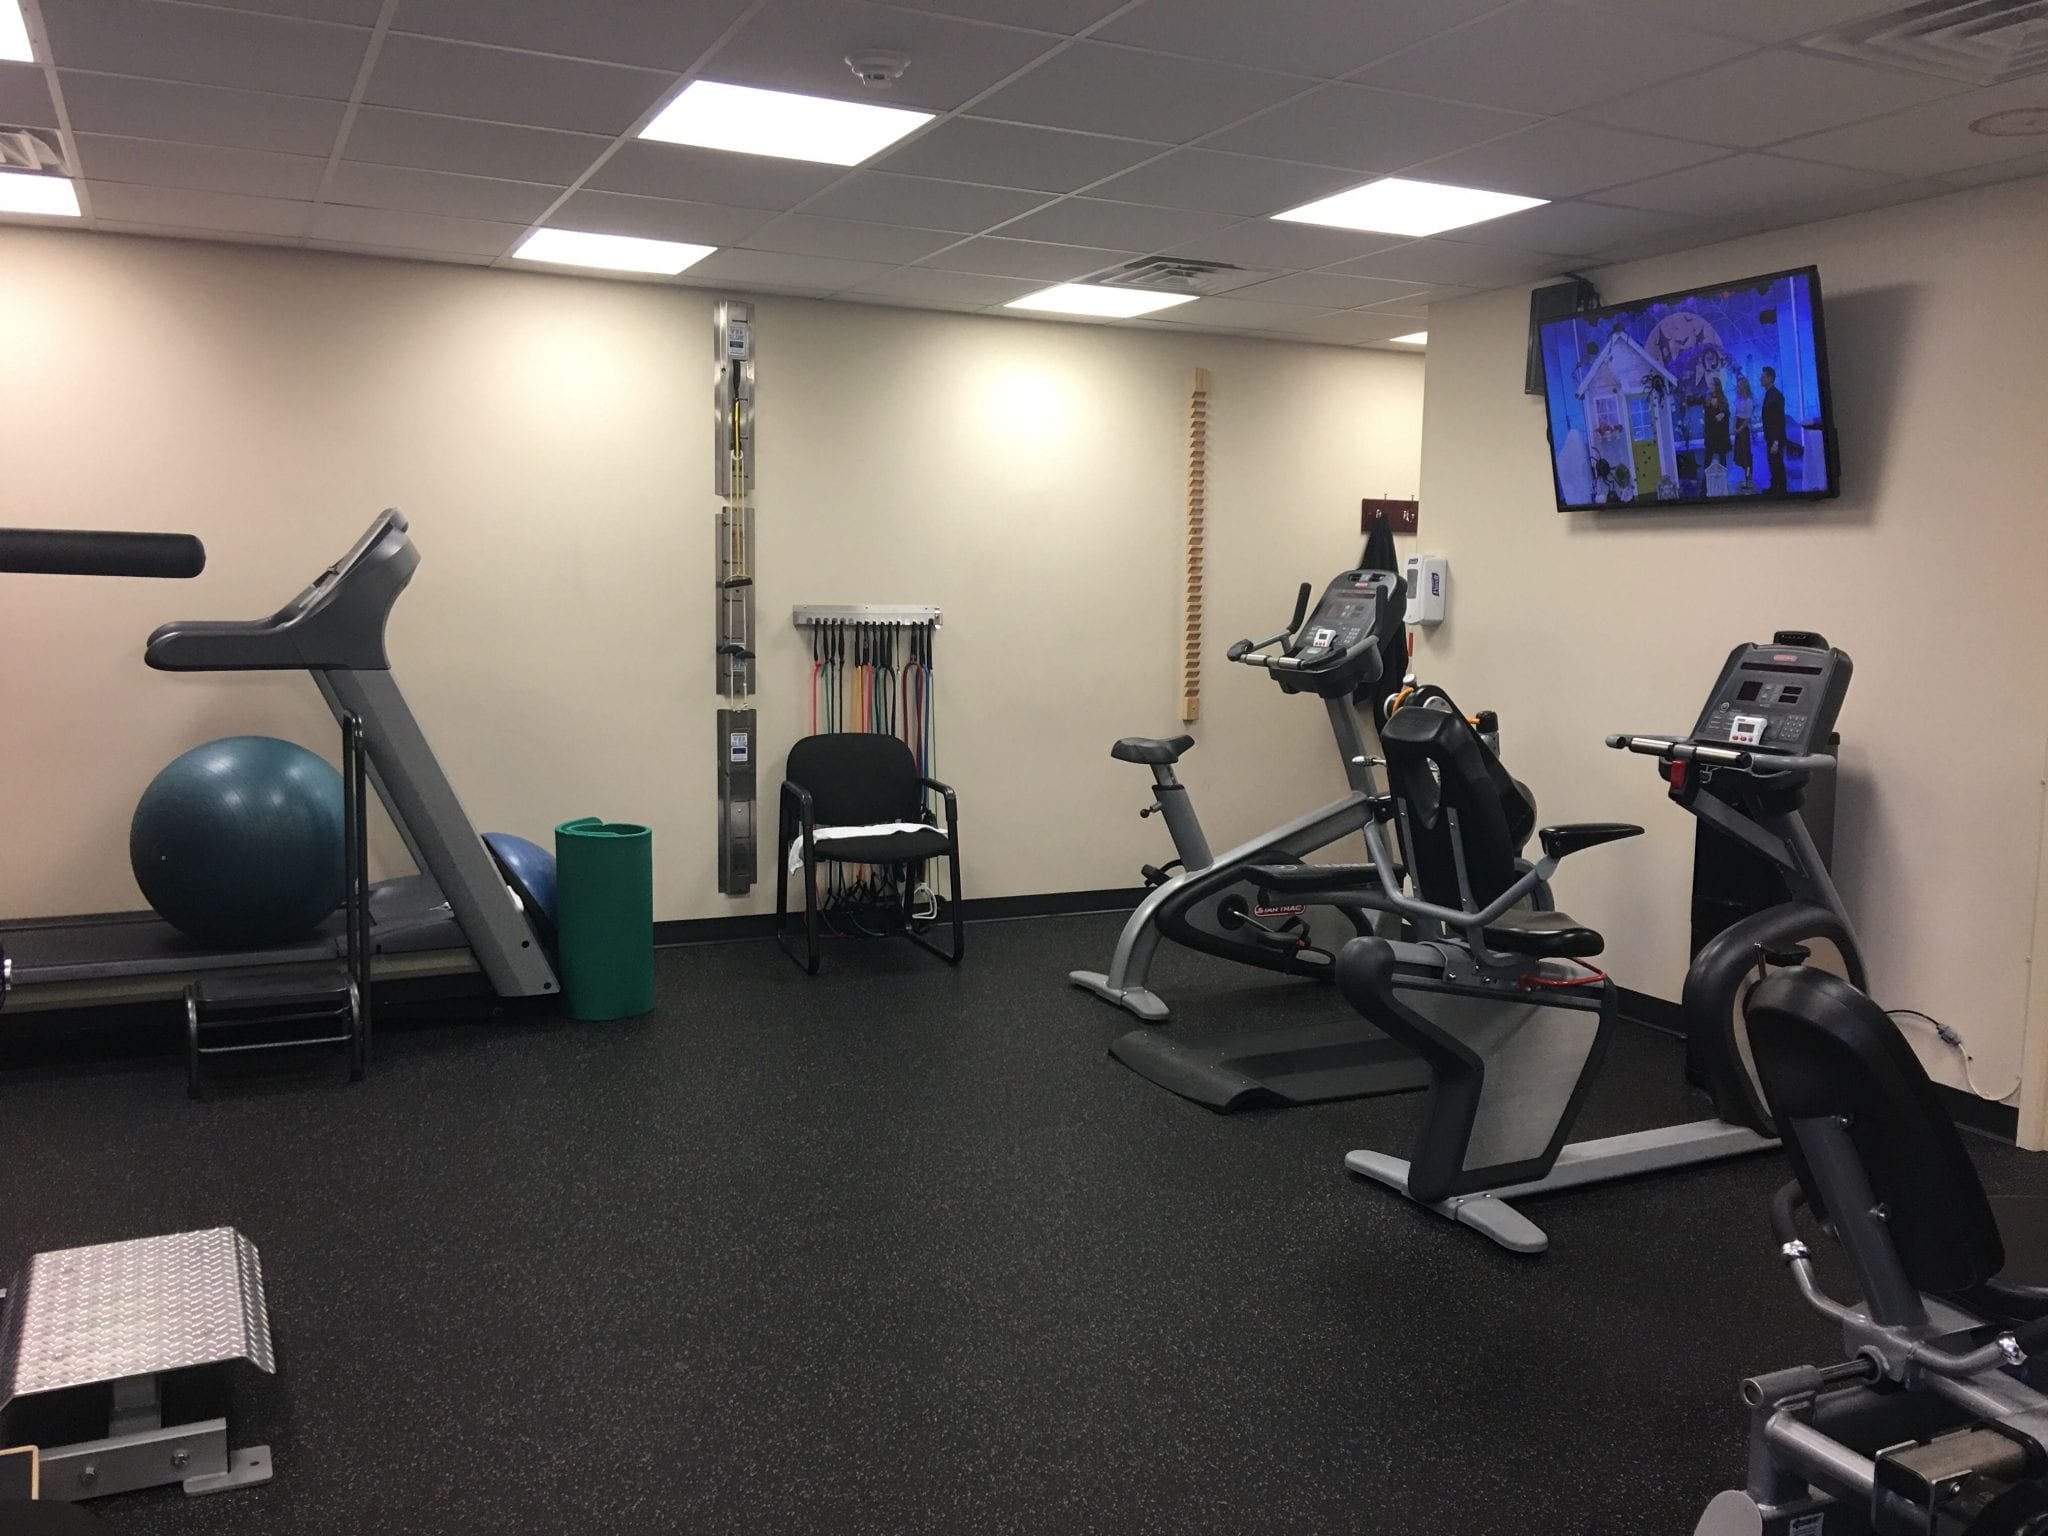 Here is an image of a part of our training room at our physical therapy clinic in Nutley, New Jersey at Bellville.